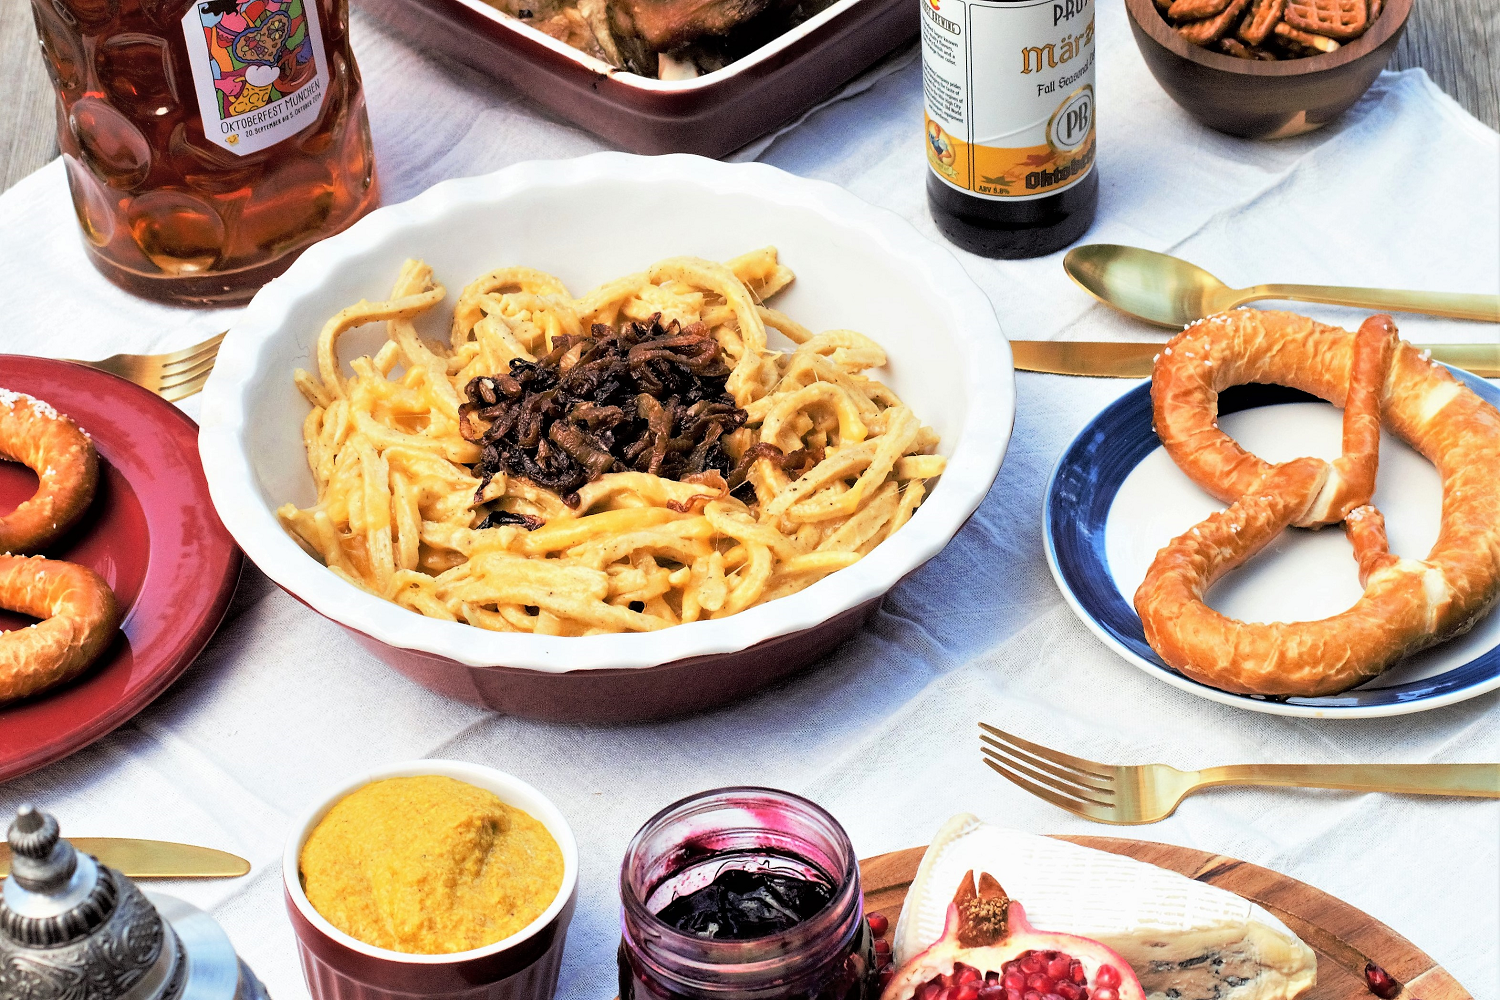 Soft, pillowy cheese noodles lightly spiced with nutmeg, basically the German version of creamy mac & cheese that's perfect for soaking up Oktoberfest beer.